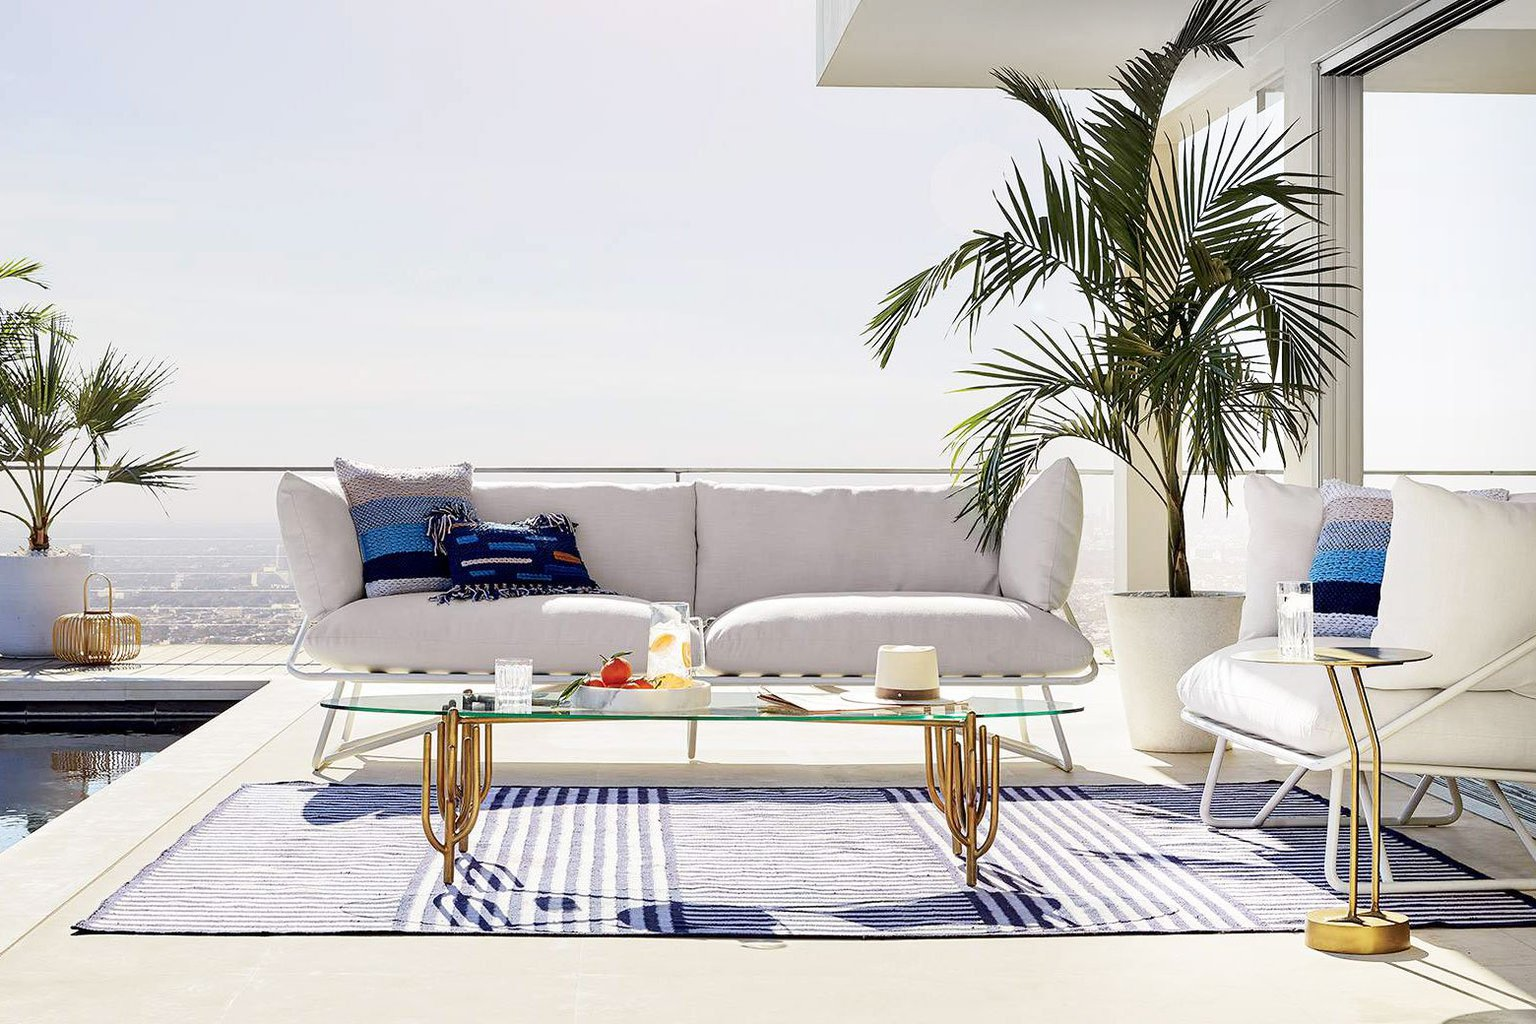 cb2 patio furniture. Poolside Modern Outdoor Furniture From CB2 X Fred Segal On Thou Swell @thouswellblog Cb2 Patio